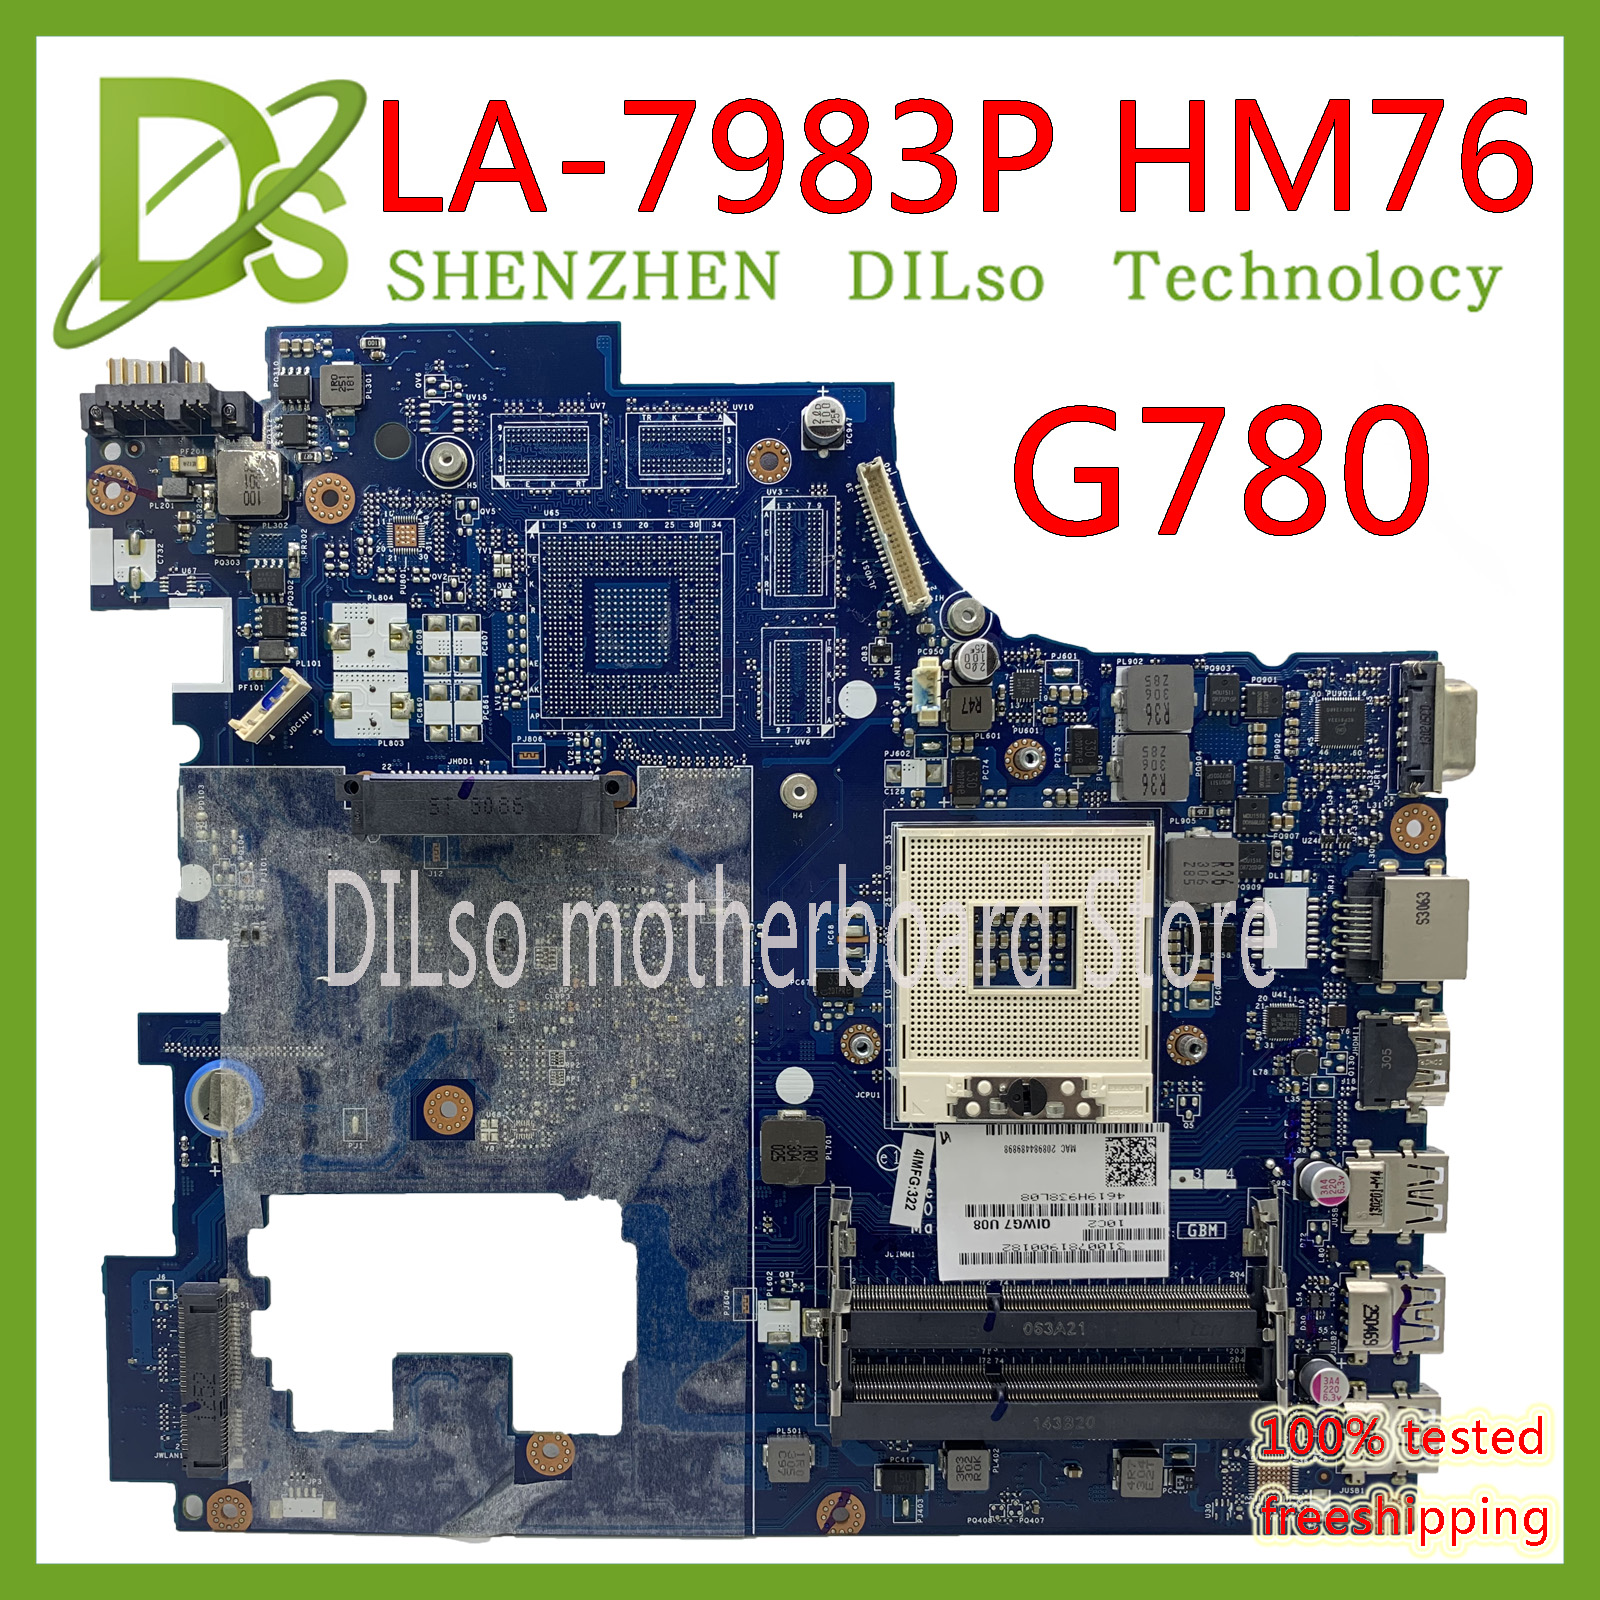 KEFU PGA989 DDR3 HM76 Lenovo G780 LA-7983P for QIWG7 100%Original title=